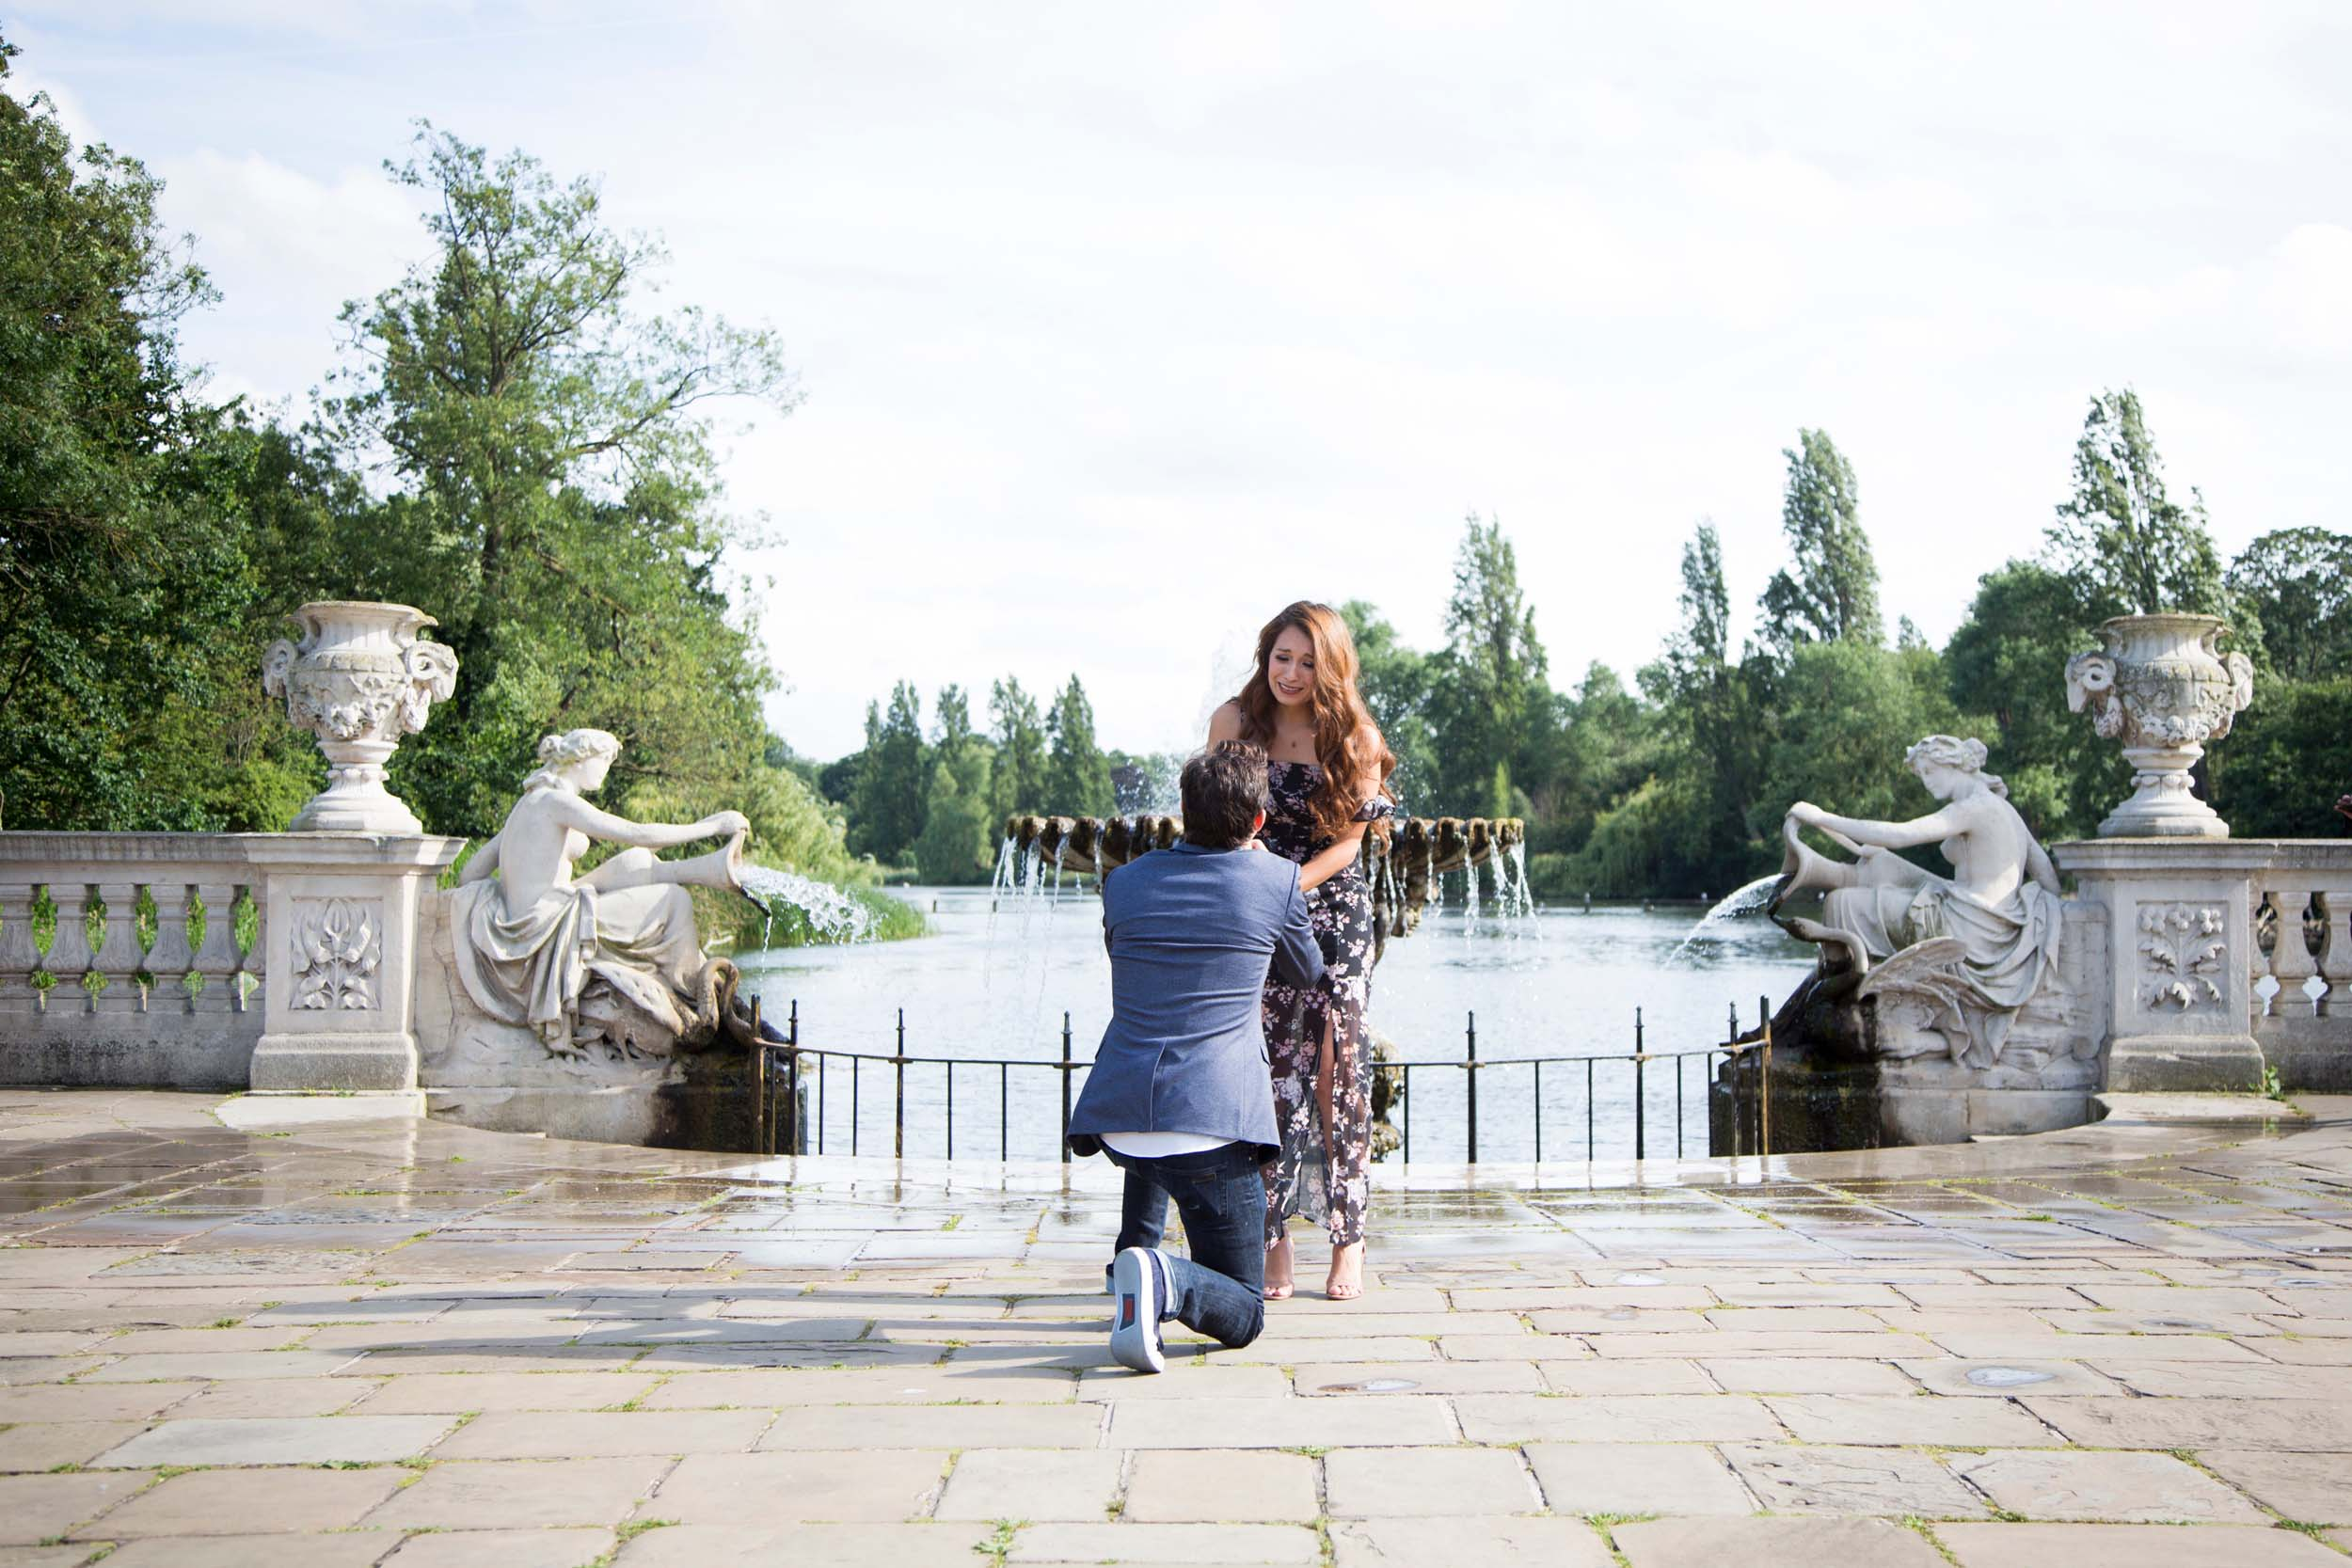 Woman shocked by her surprise proposal while her partner is proposing in London, UK